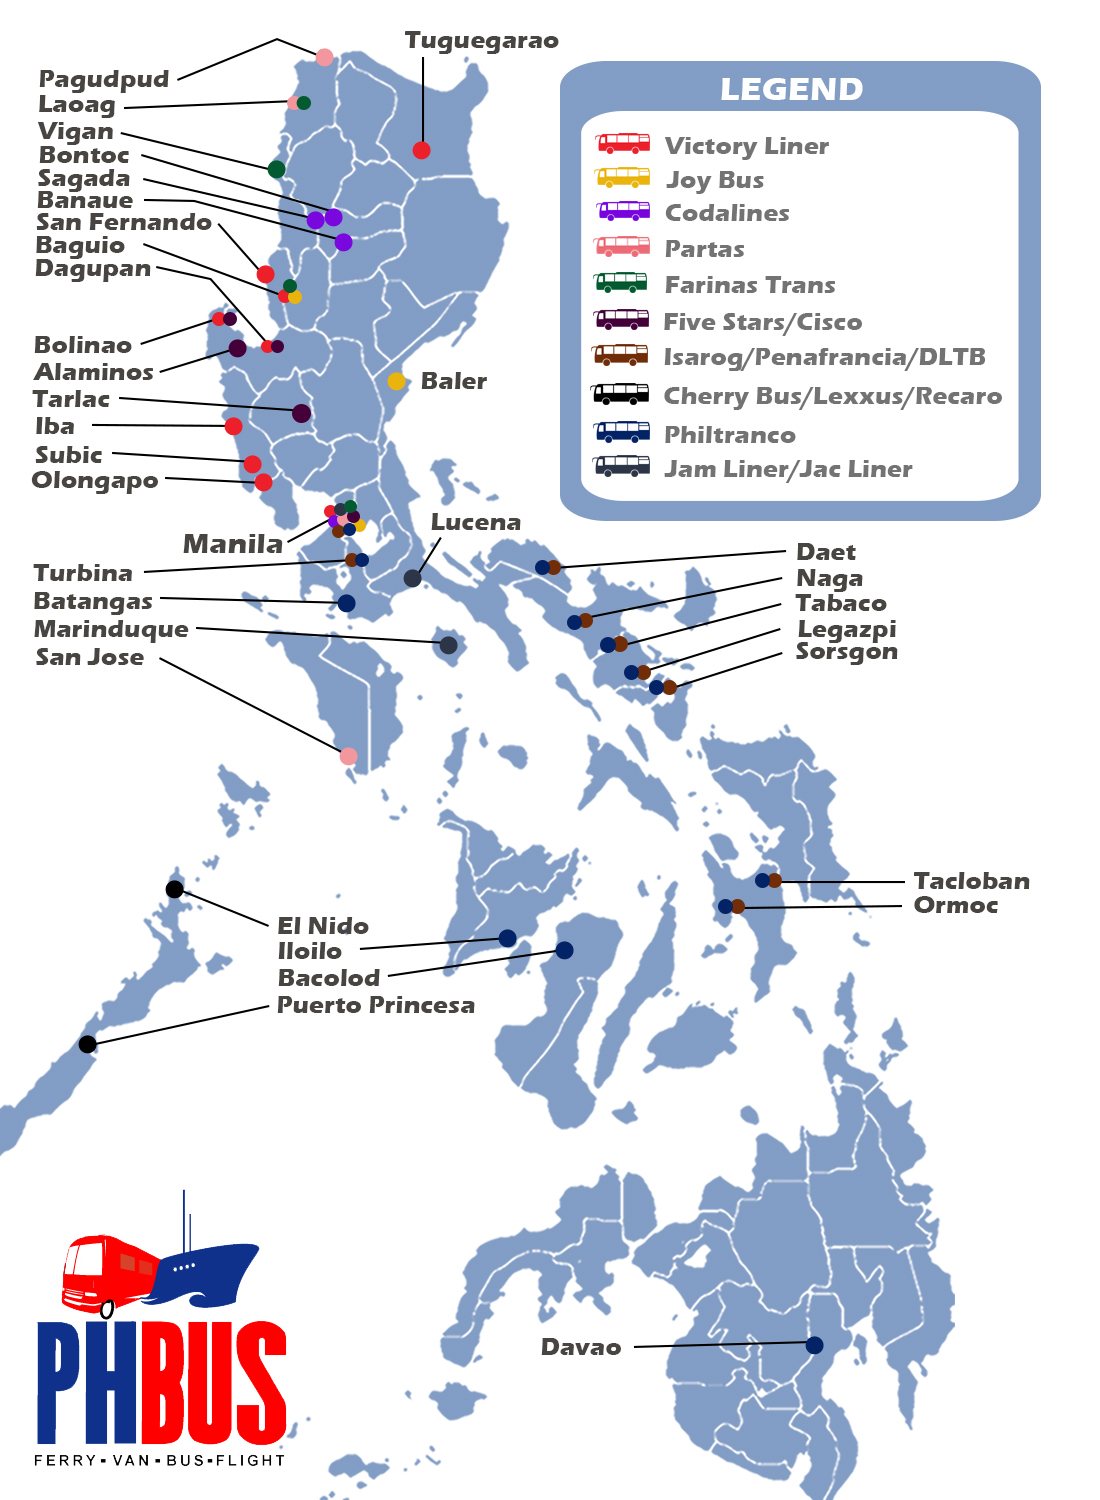 phbus-all-bus-route-map-philippines.jpg